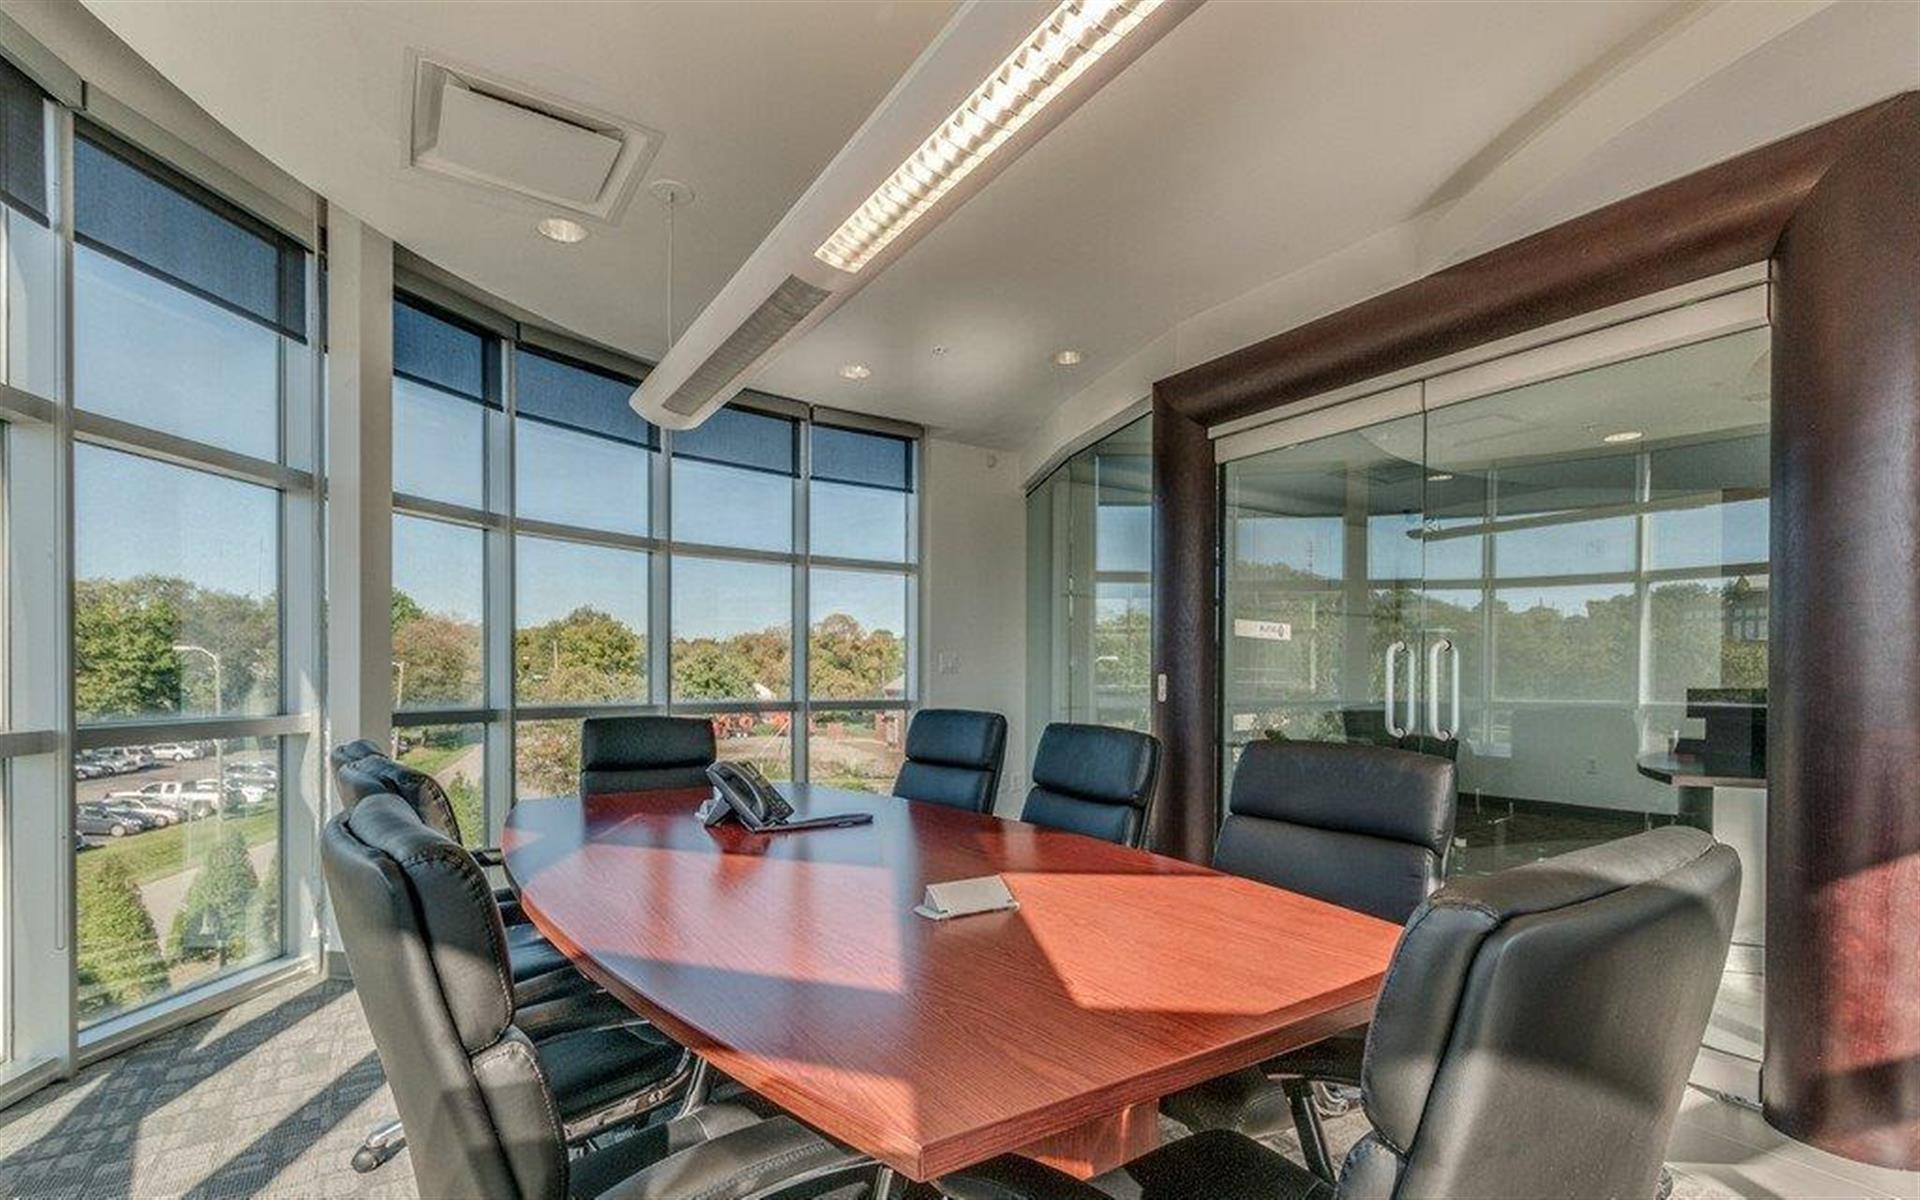 Green Hills Office Suites - Large Meeting Room